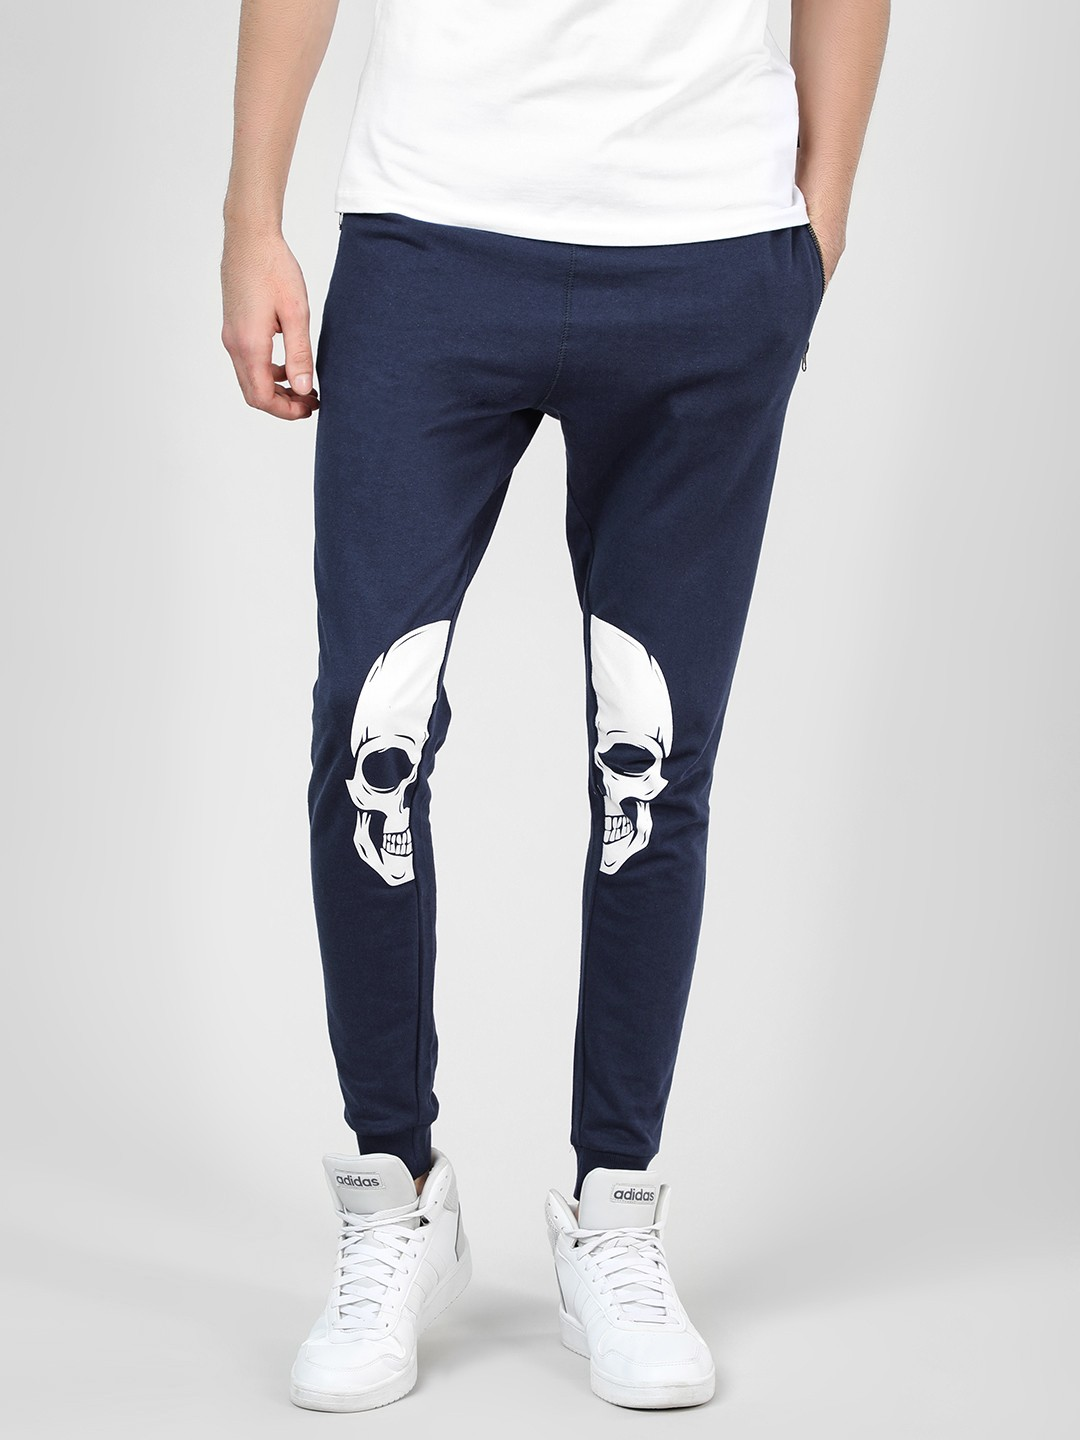 Garcon Navy Joggers With Skull Print 1